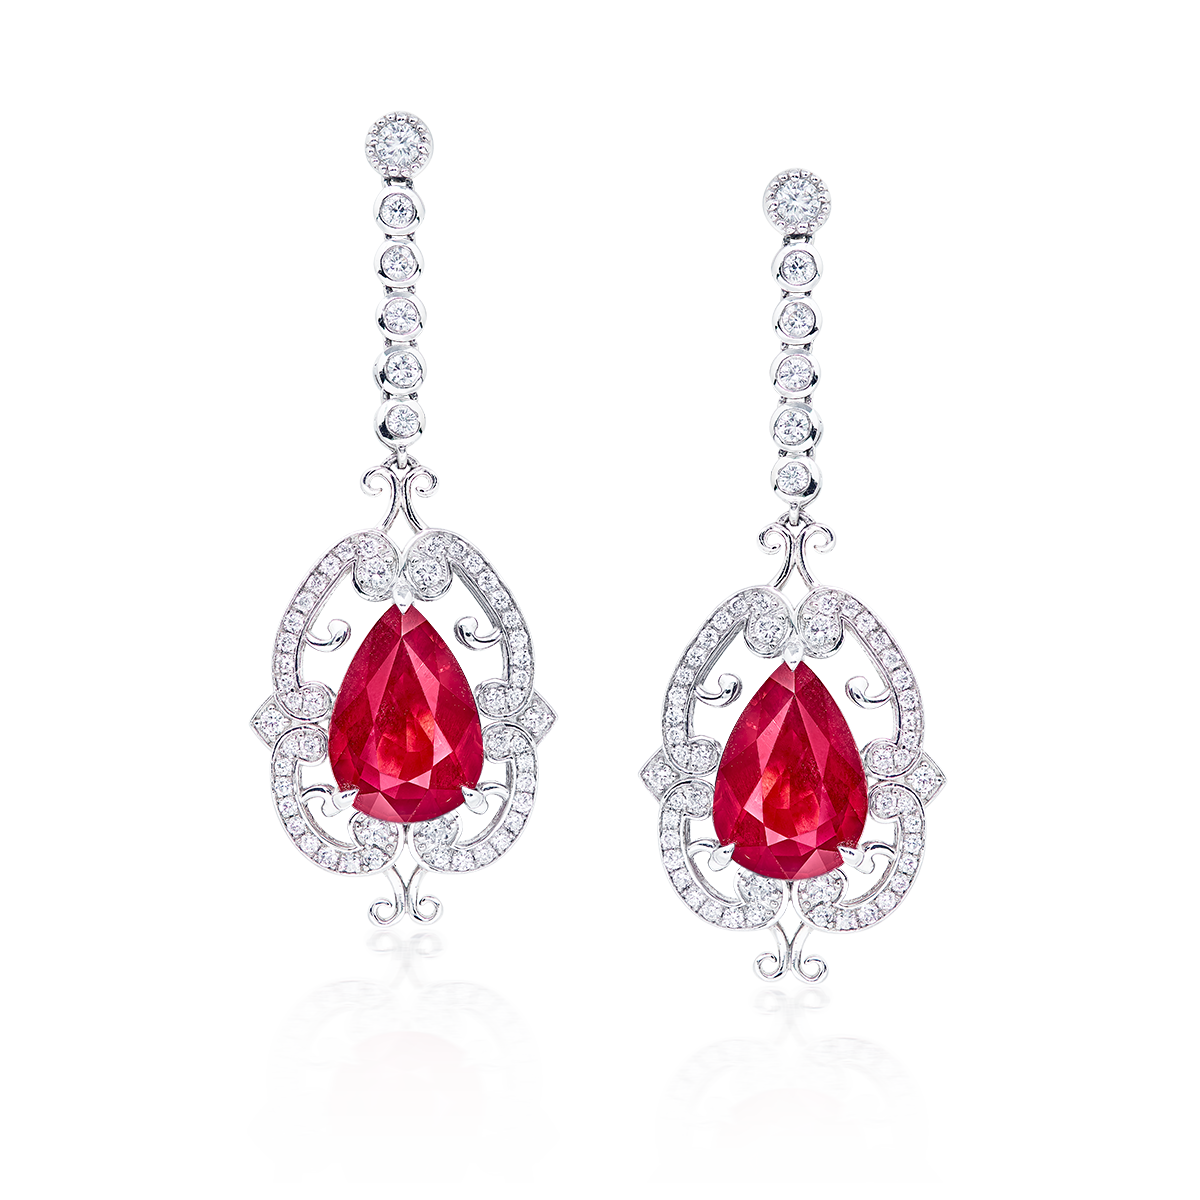 莫三比克天然無燒艷彩紅寶鑽石耳環